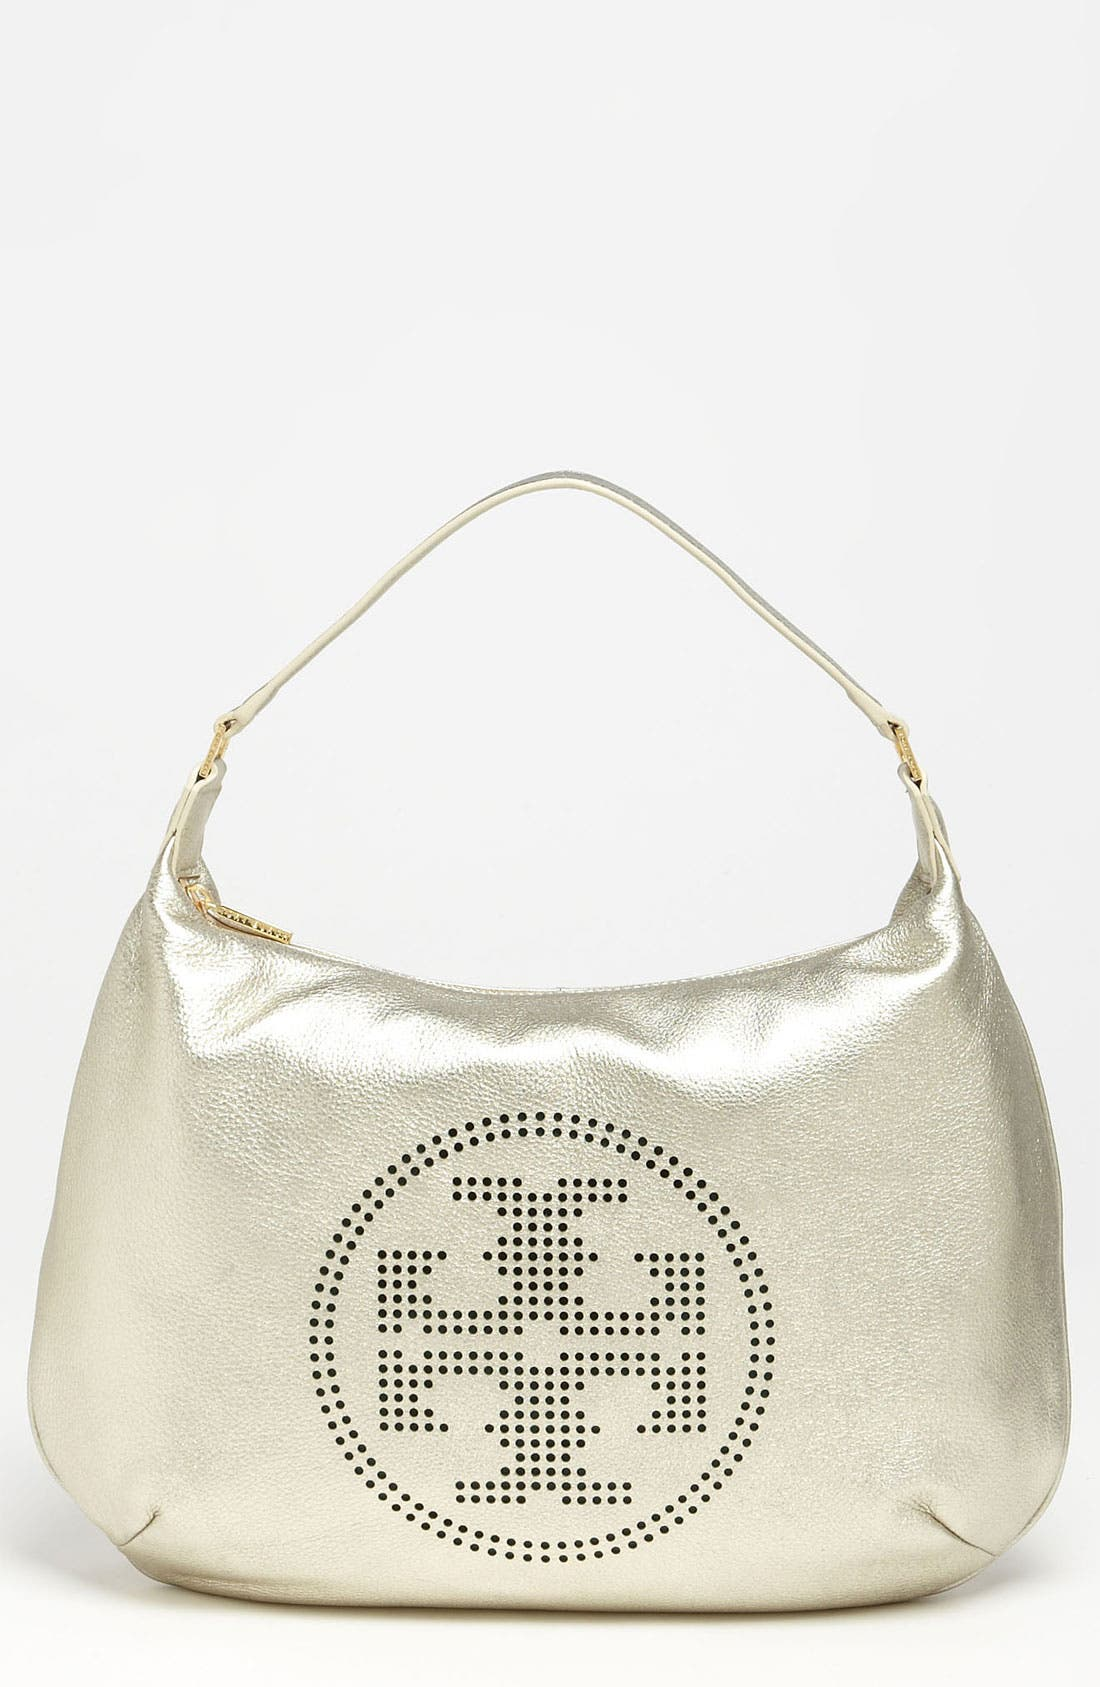 Alternate Image 1 Selected - Tory Burch Perforated Logo Metallic Leather Hobo